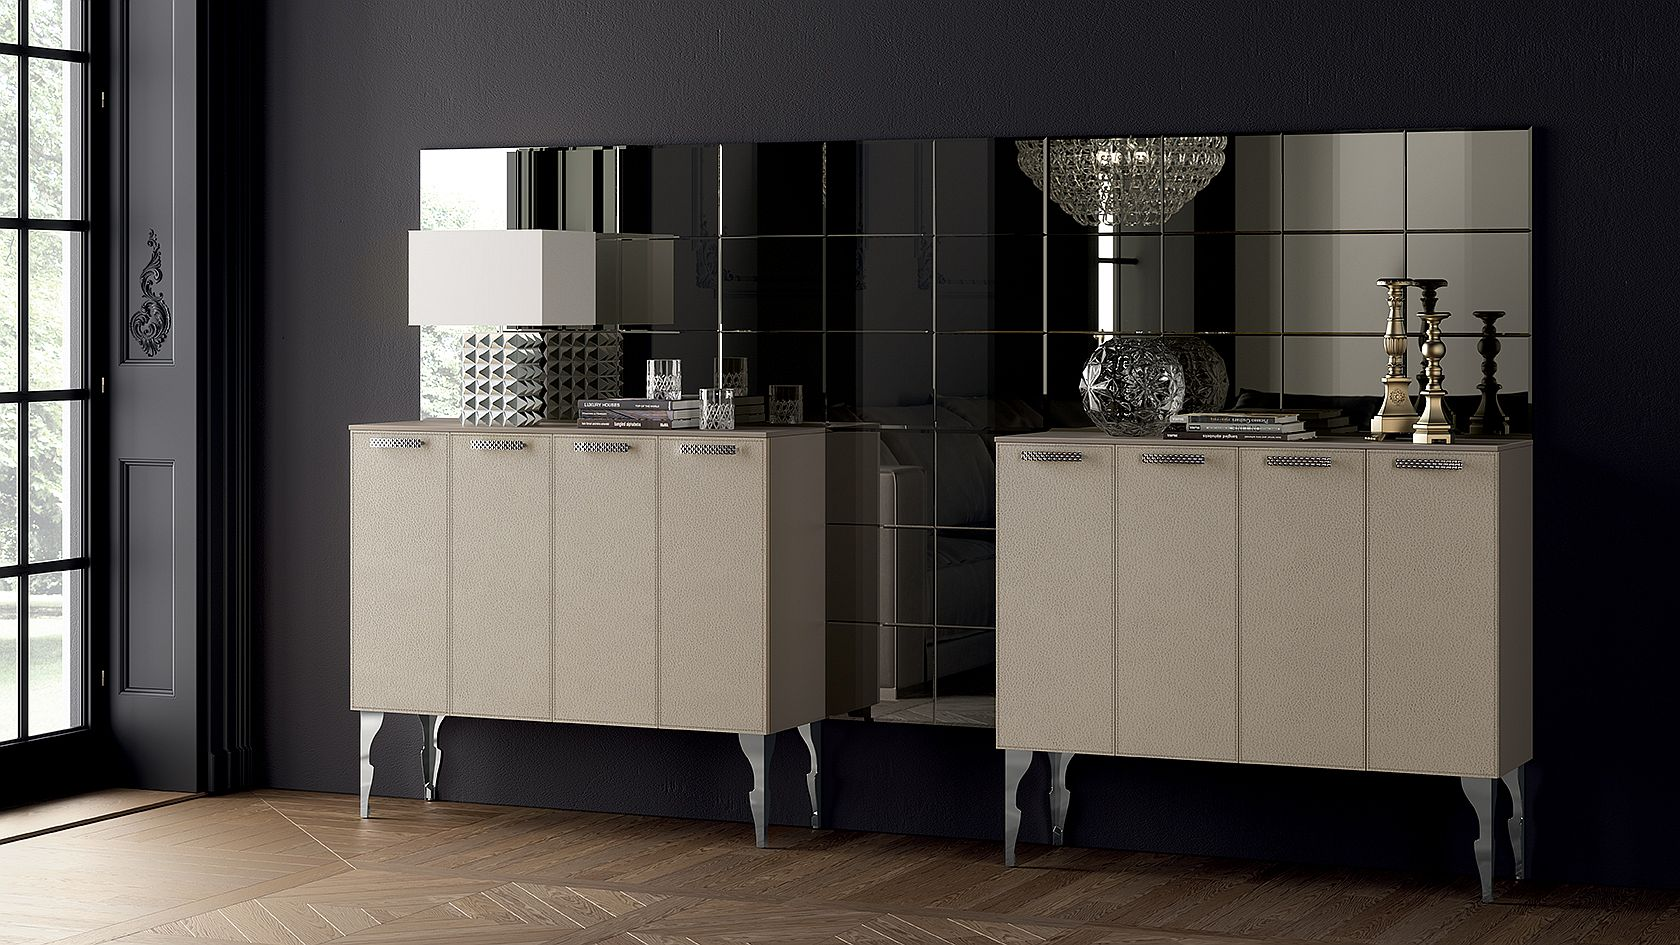 Large wall panels create a mirror that perfectly reflects the style of sophisticated cabinets